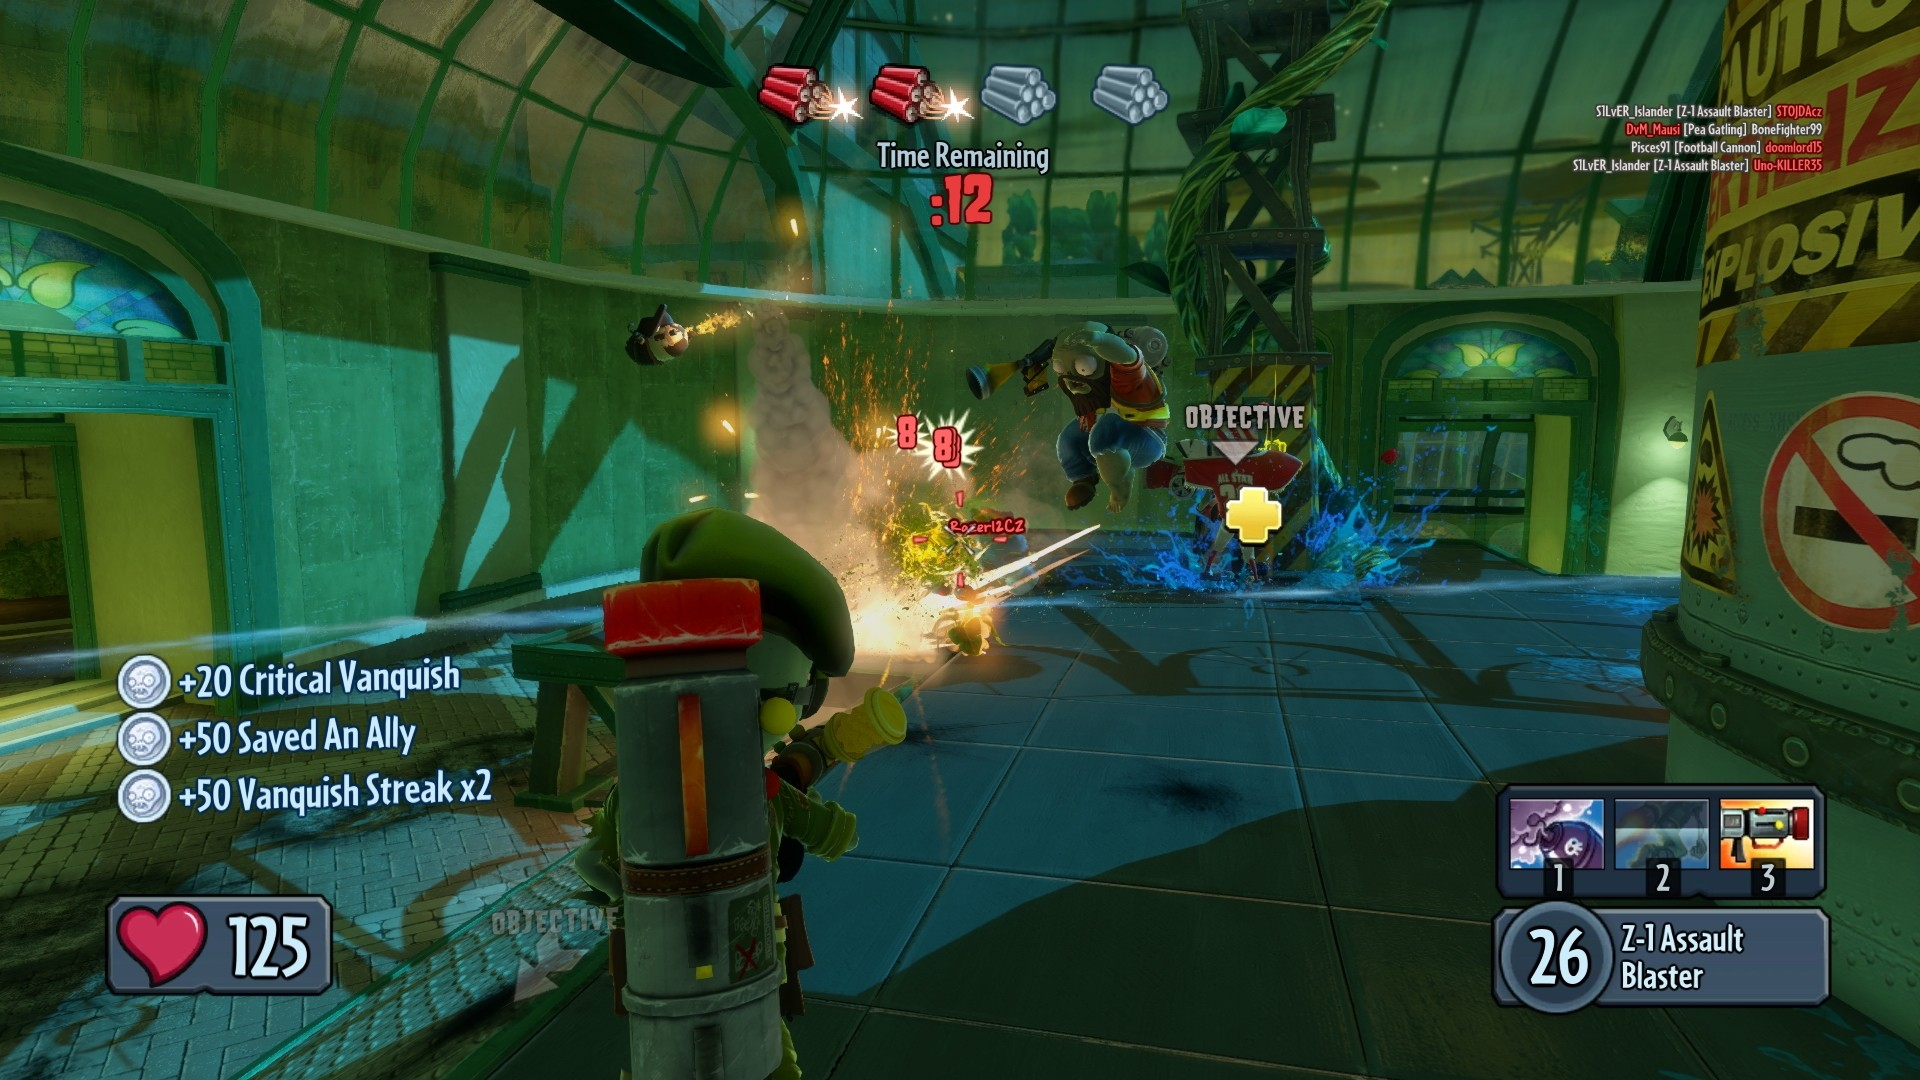 Plants vs Zombies Garden Warfare [PC]